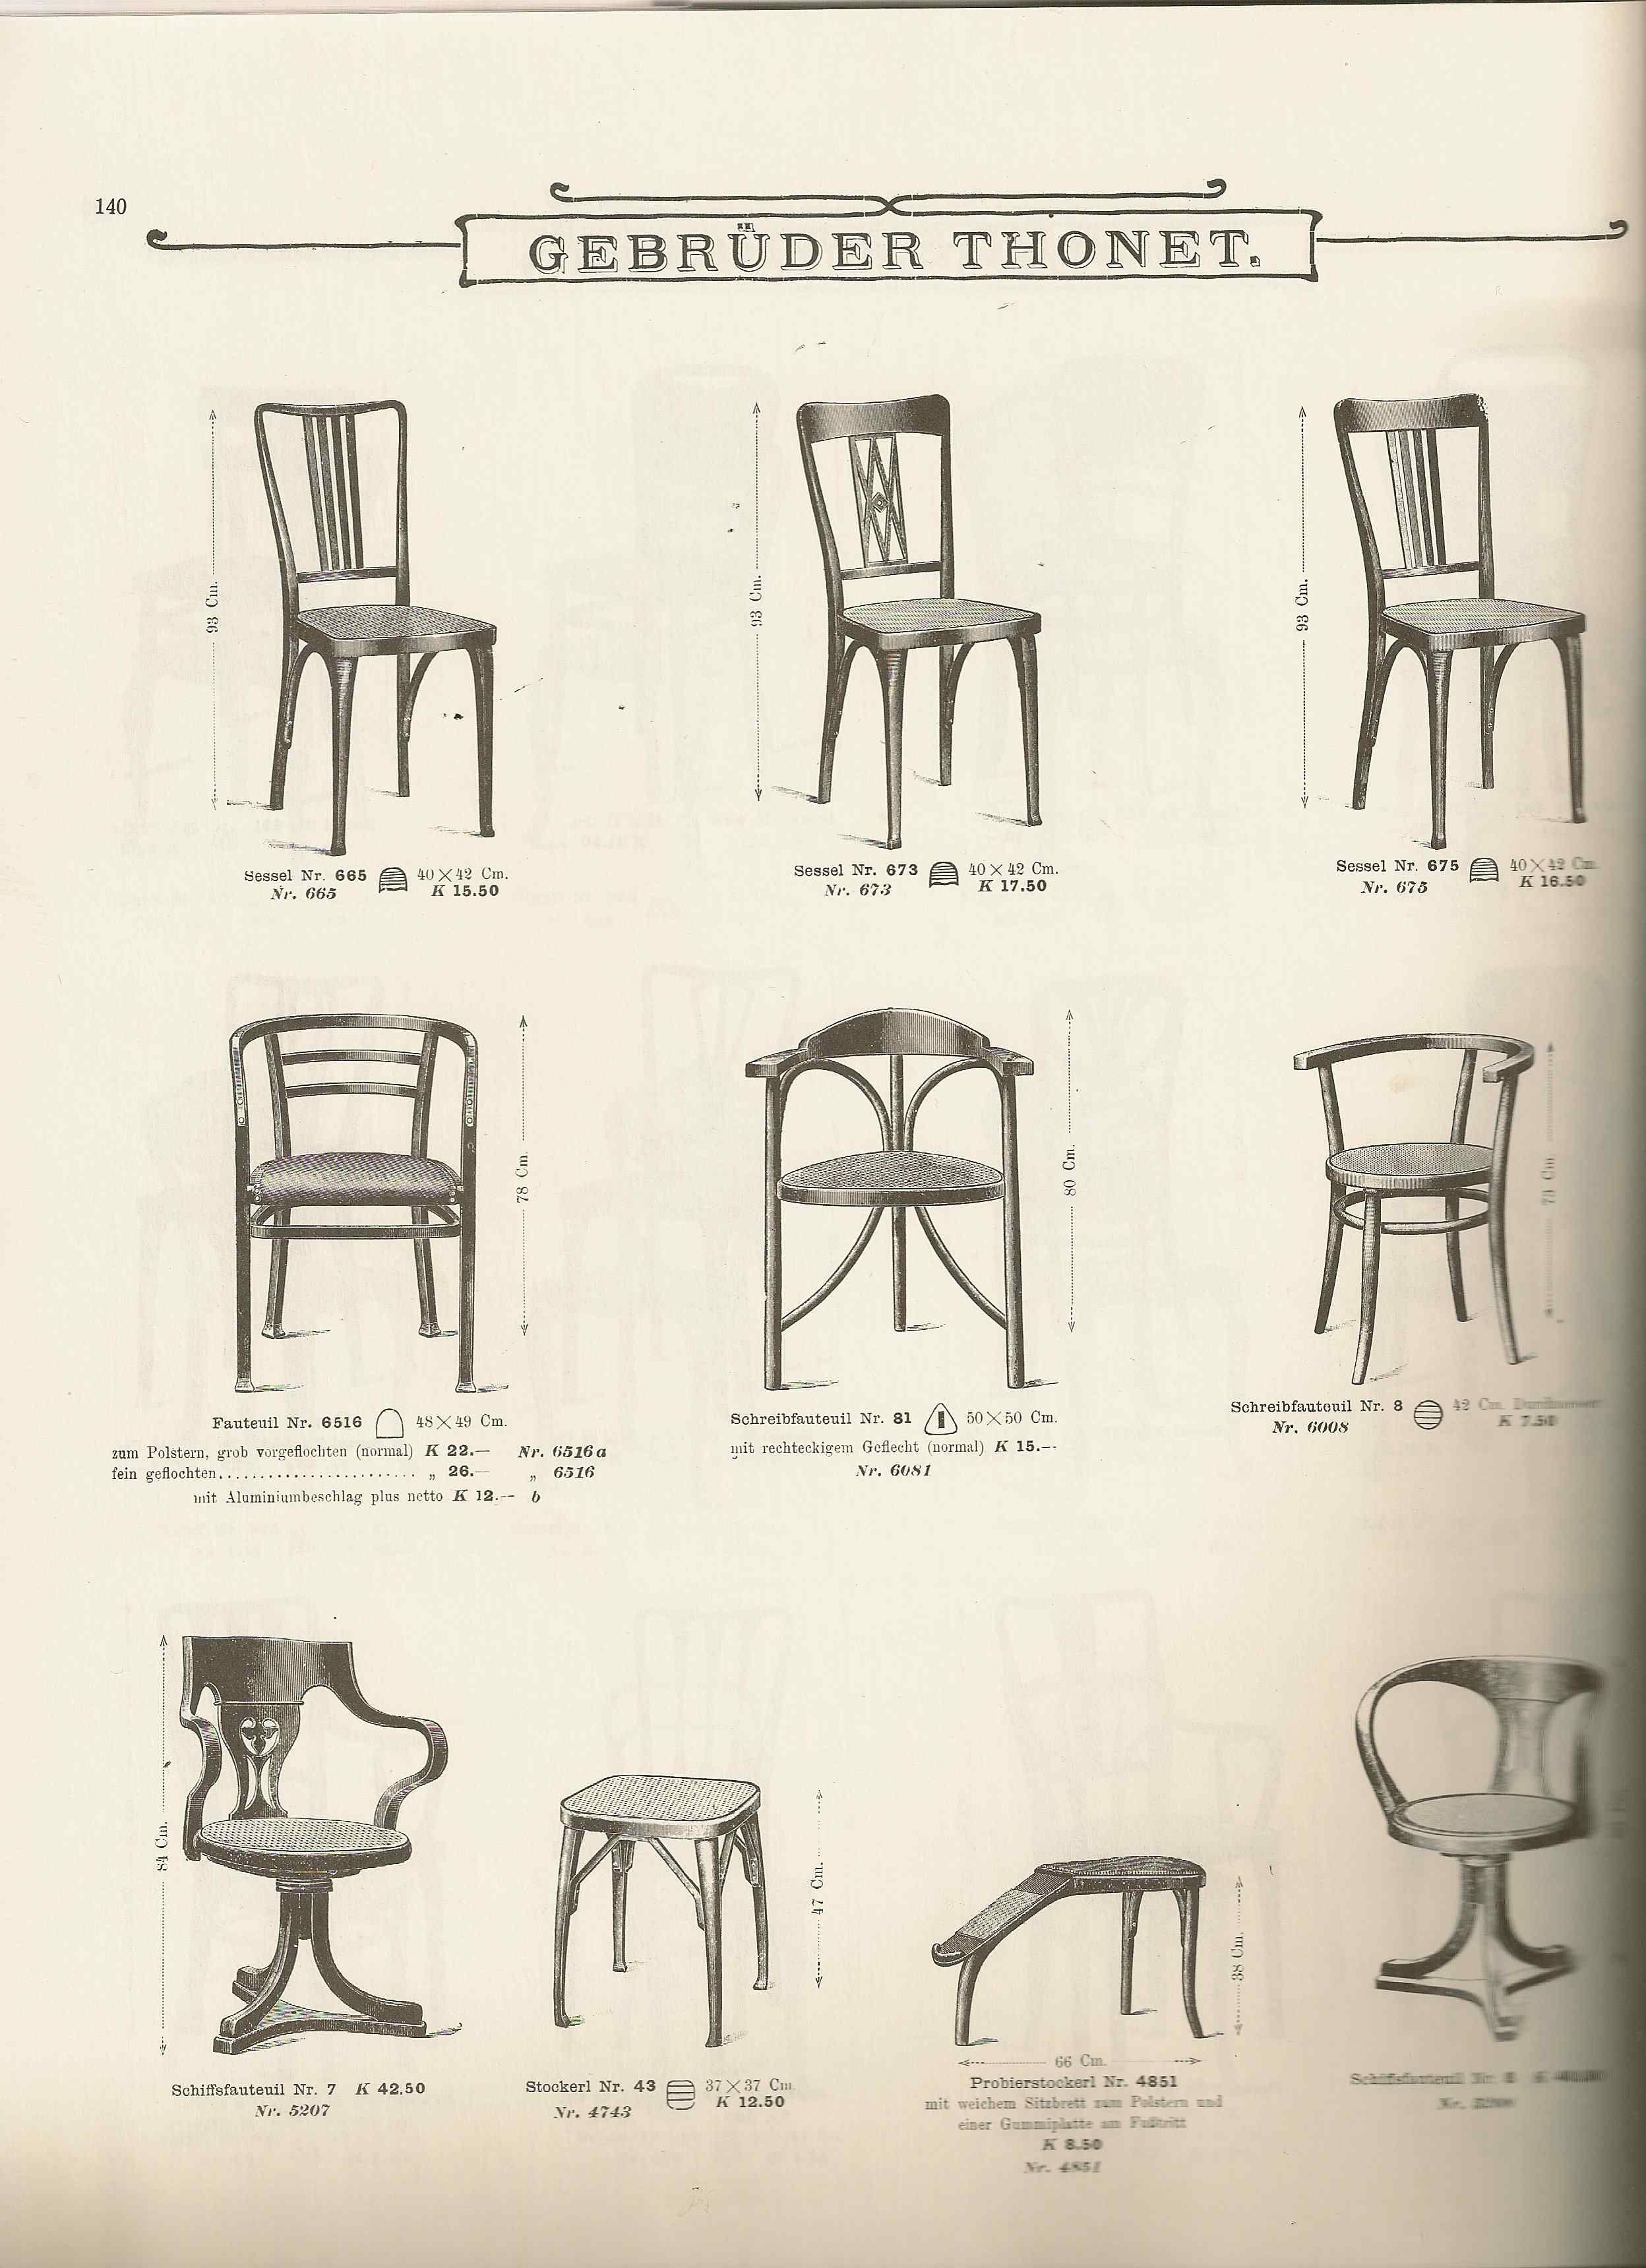 A page from the 1904 Gebrder Thonet Catalog including